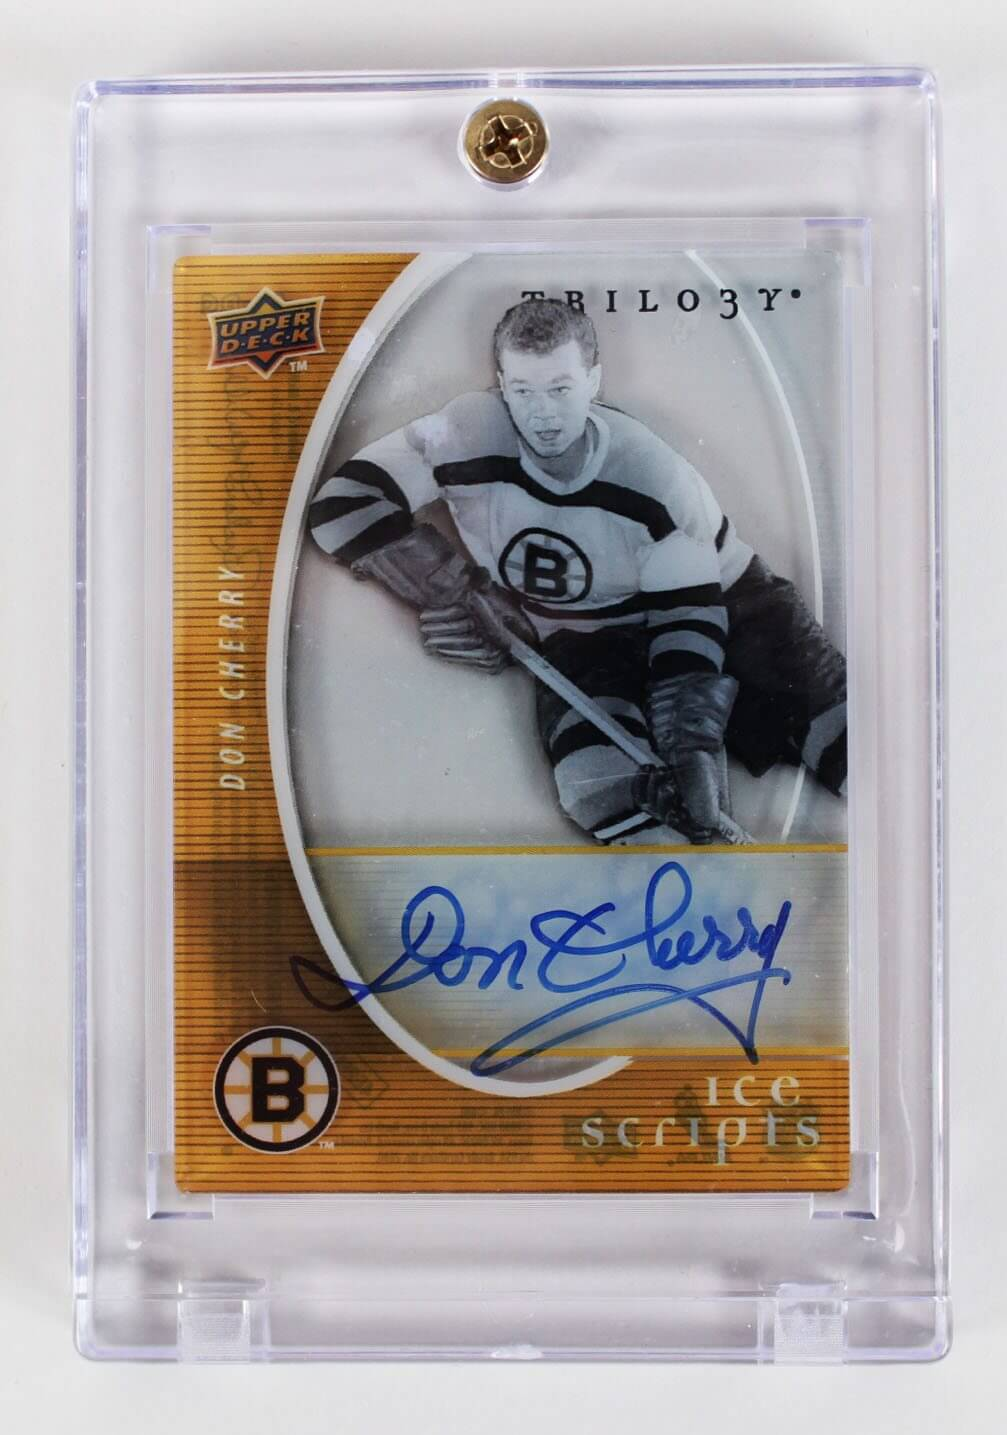 2008 Upper Deck Trilogy – Boston Bruins – Don Cherry Signed Hockey Card Ice Scripts (IS-DC)54482_01